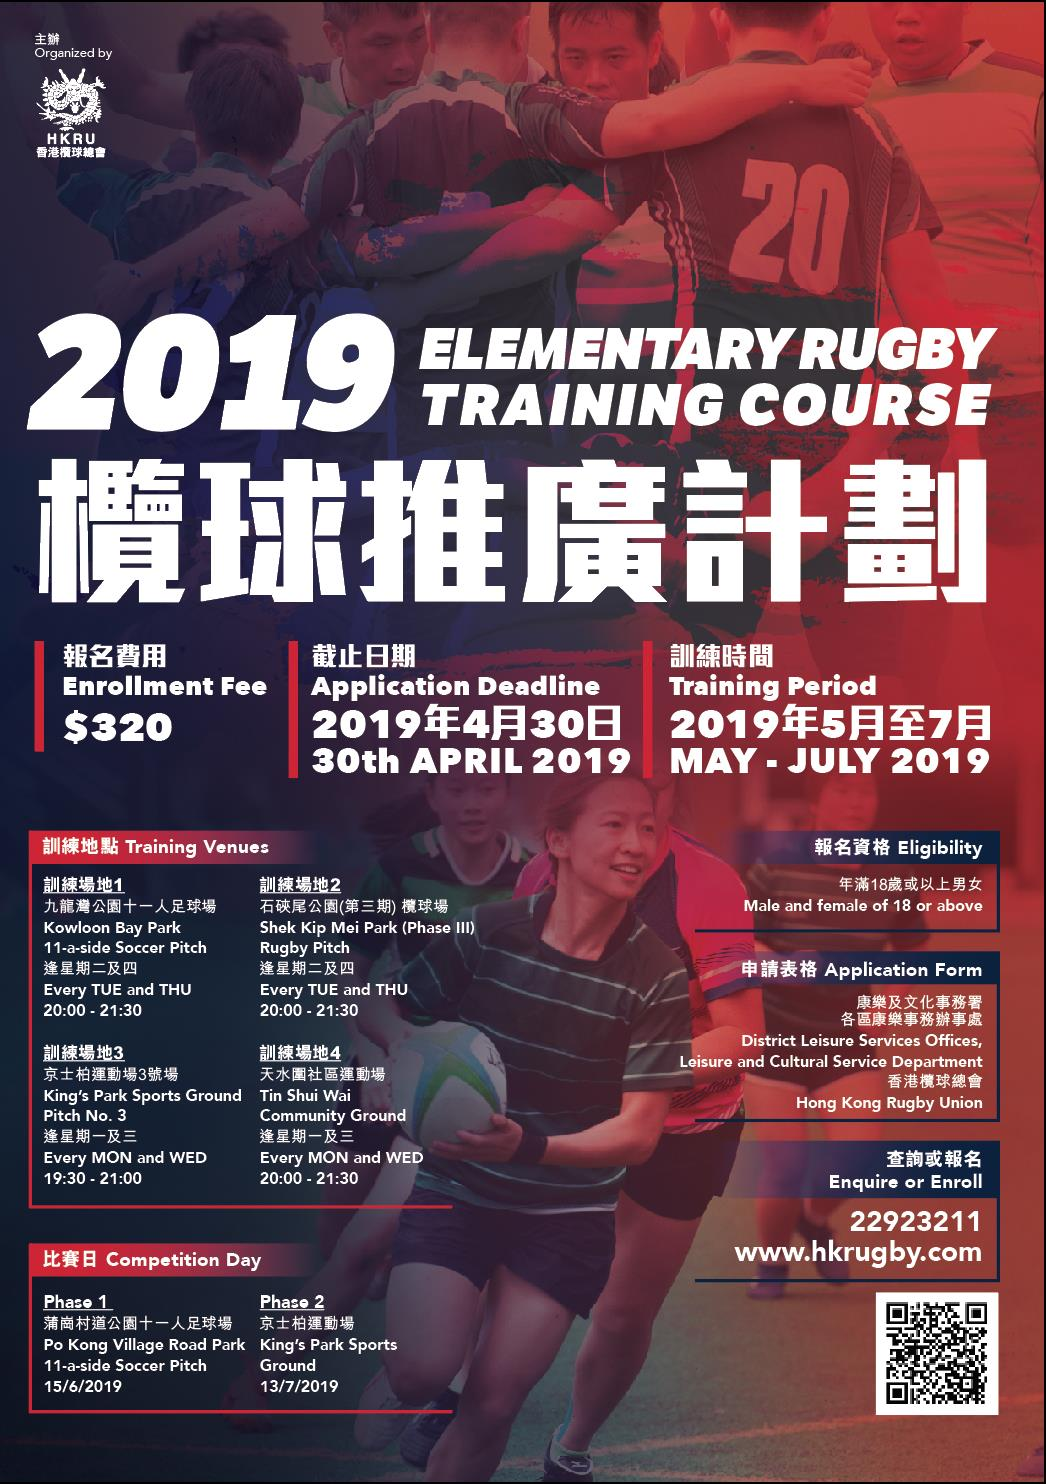 Elementary Rugby Training Course 2019 thumbnail